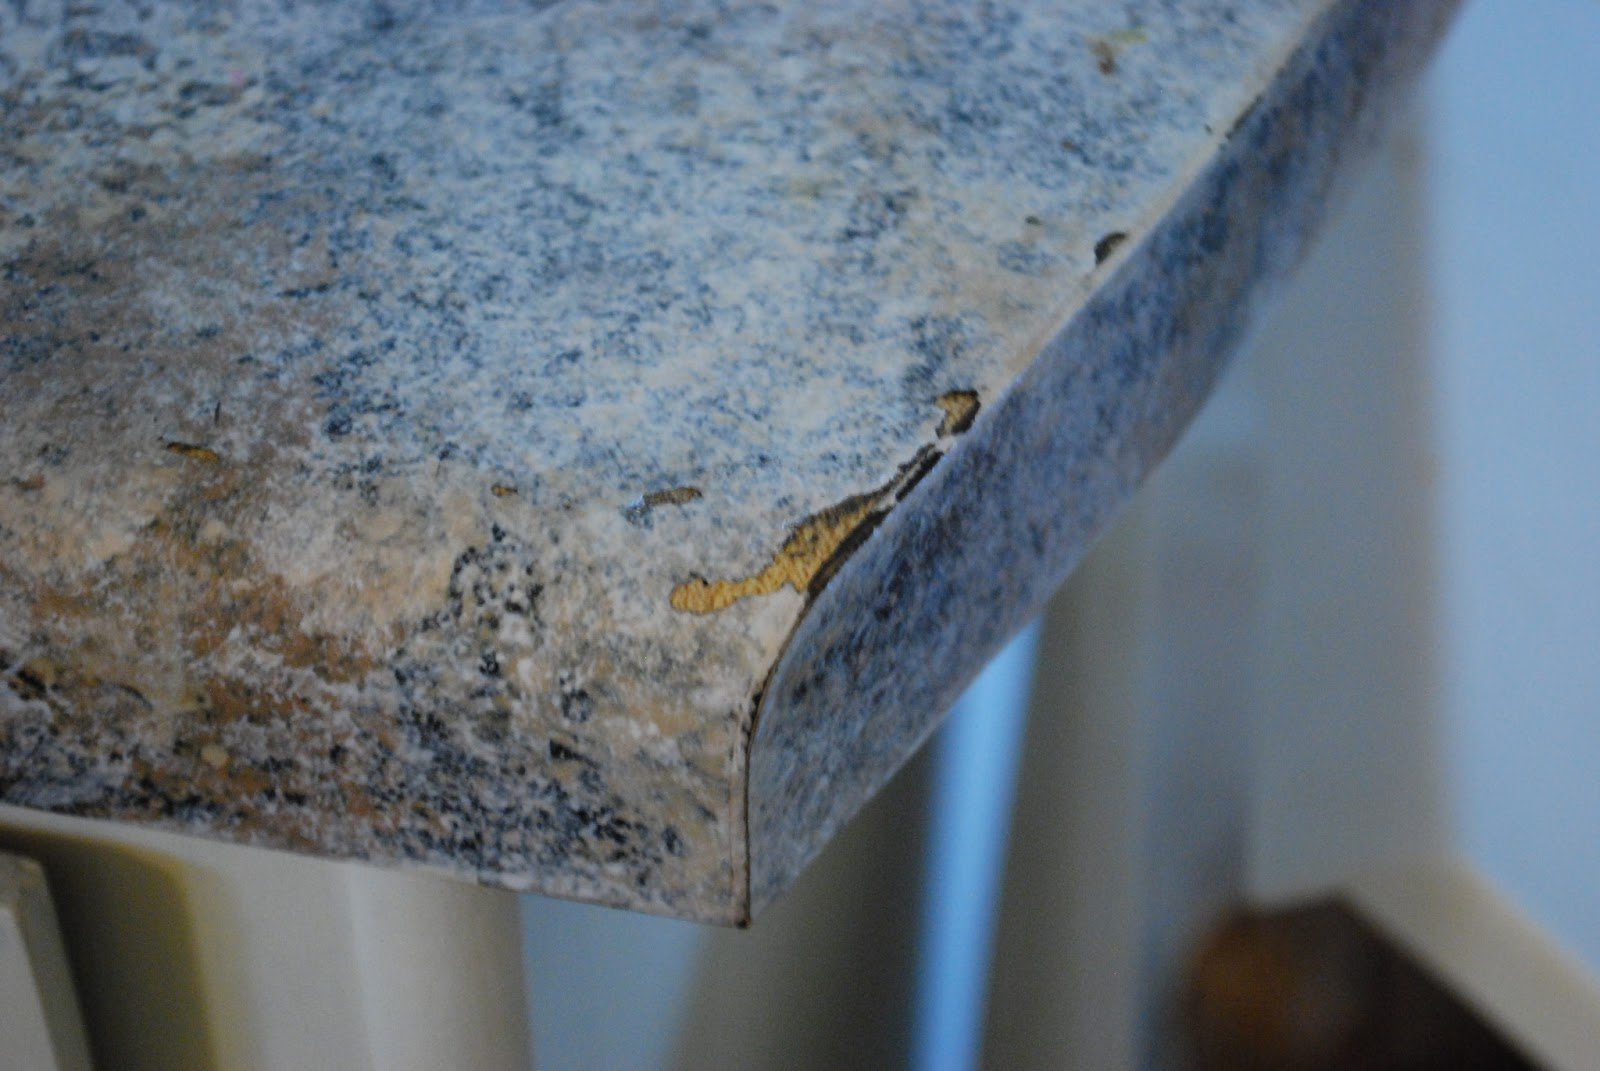 Countertop Paint Peeling : ... not cleaned up immediately, which causes the paint to soften and peel